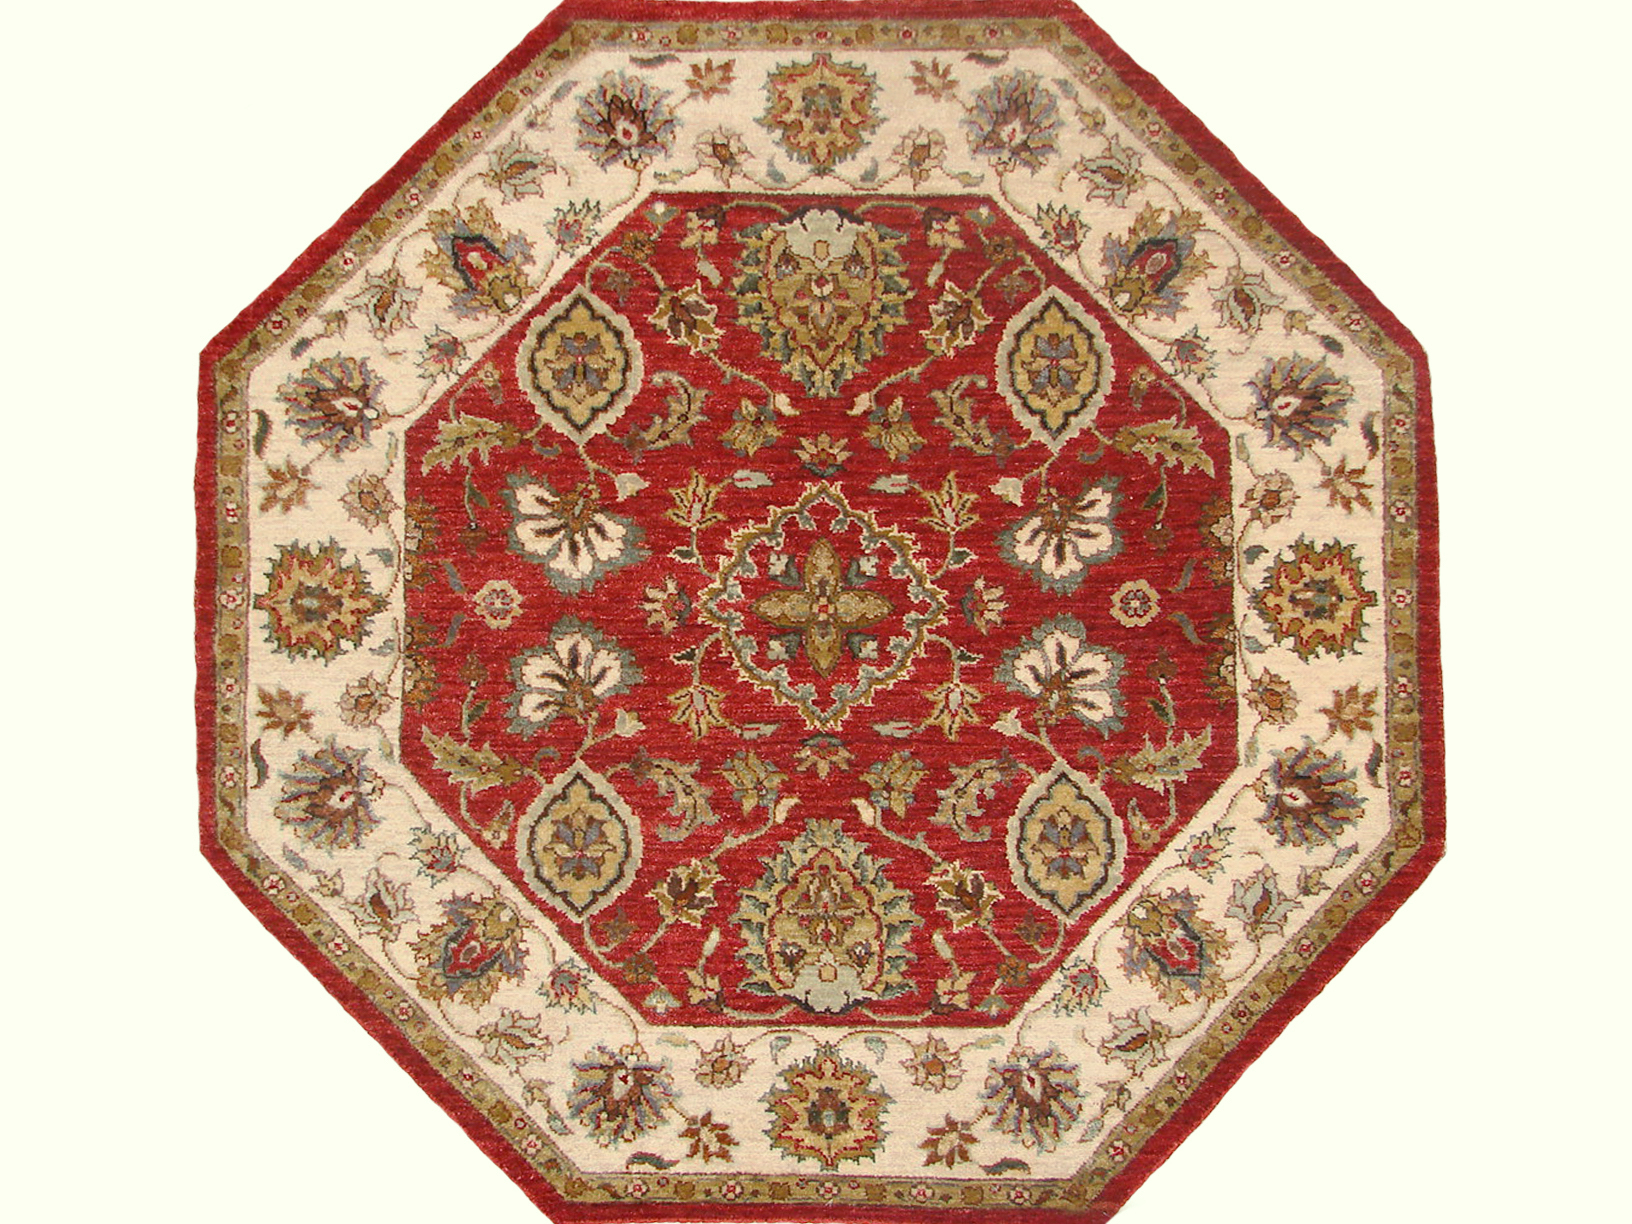 4 ft. Round & Square Traditional Hand Knotted Wool Area Rug - MR19081